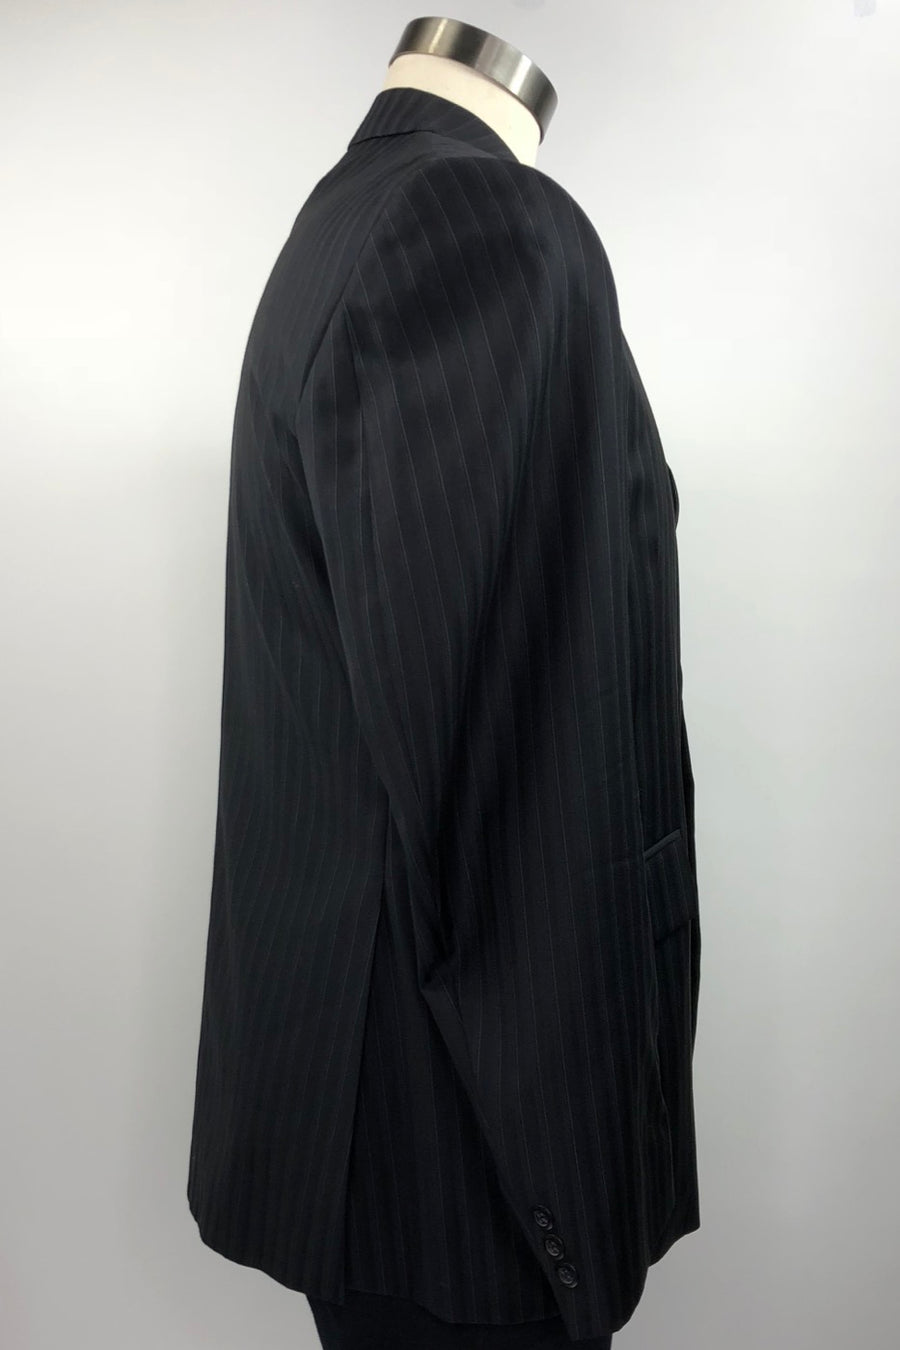 Grand Prix Hunt Coat in Black Pinstripe - Right Side View